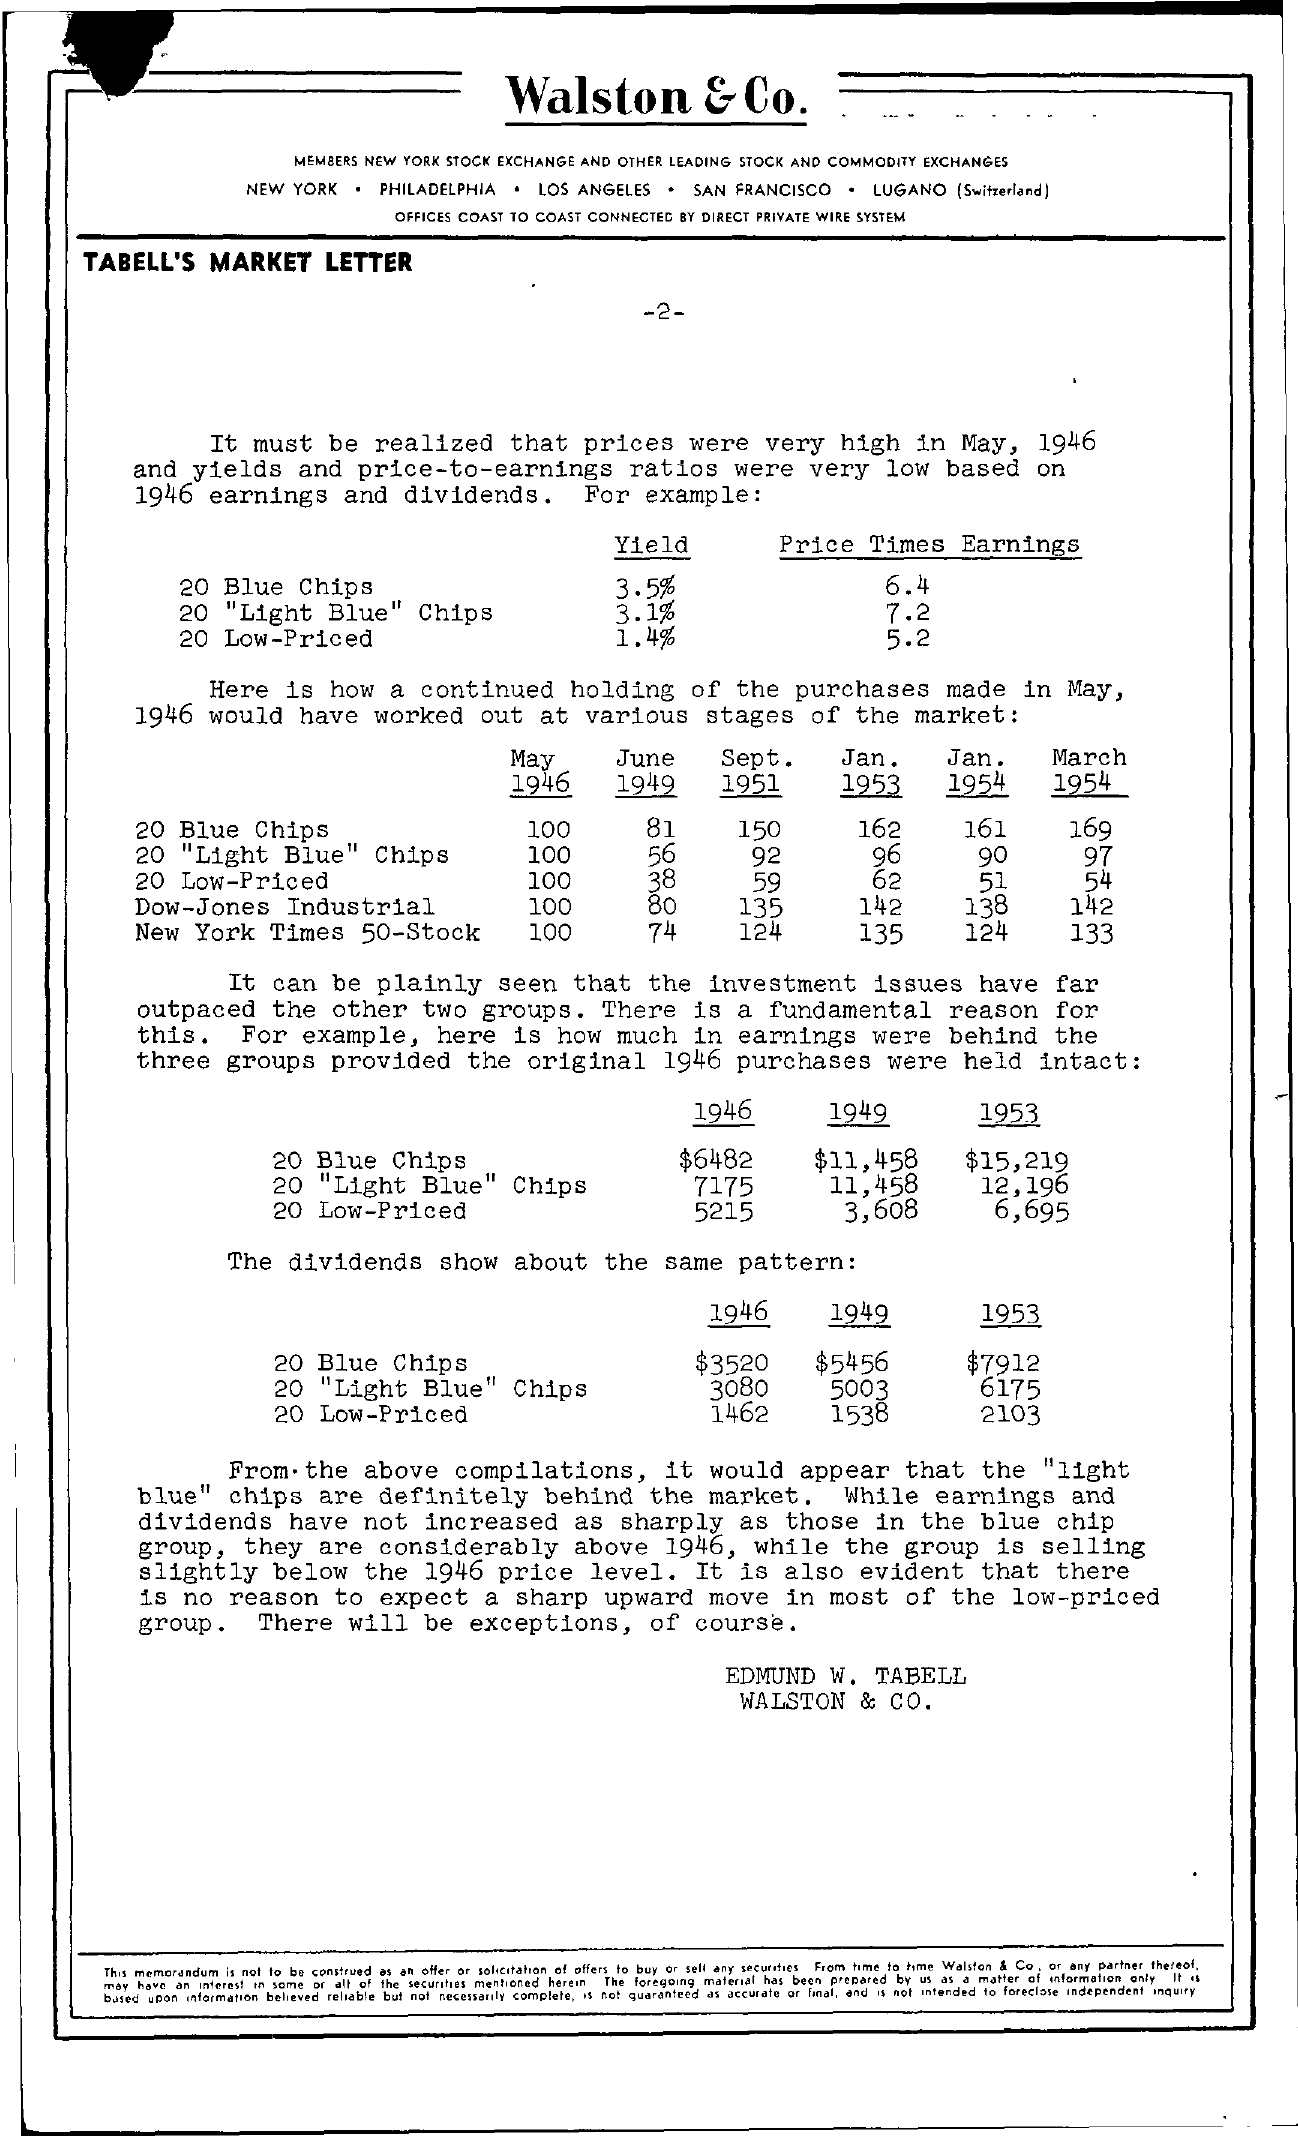 Tabell's Market Letter - February 26, 1954 page 2